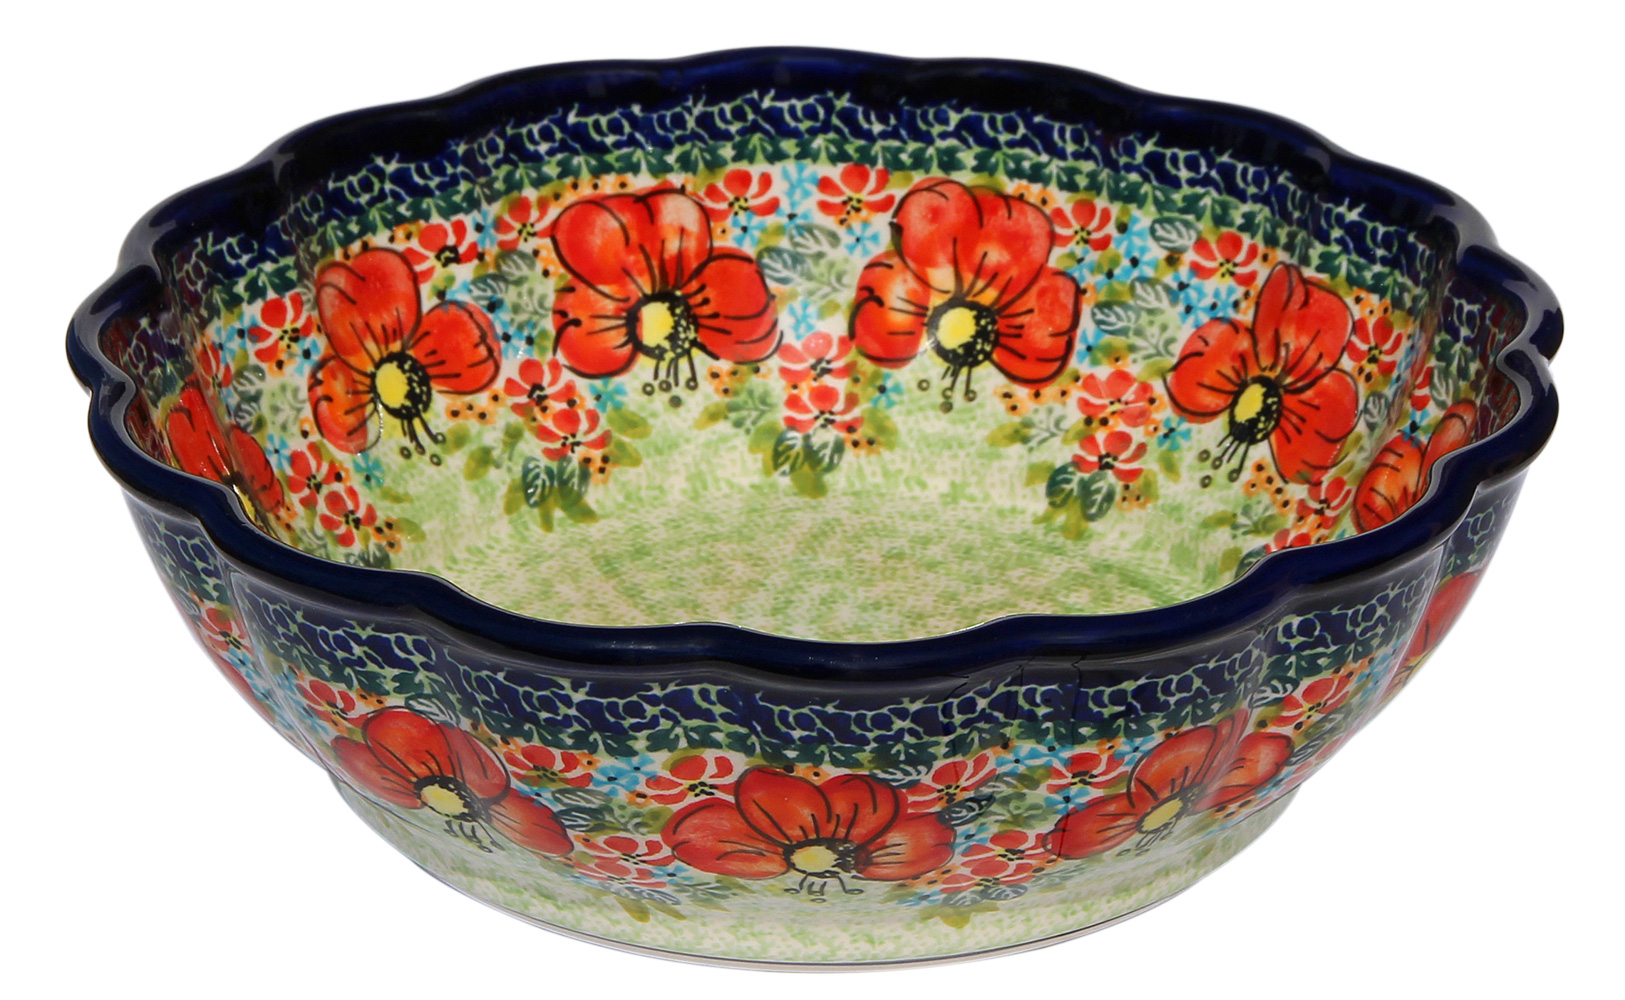 Polish Pottery Scalloped Bowl, Unikat Signature 296ar Pattern